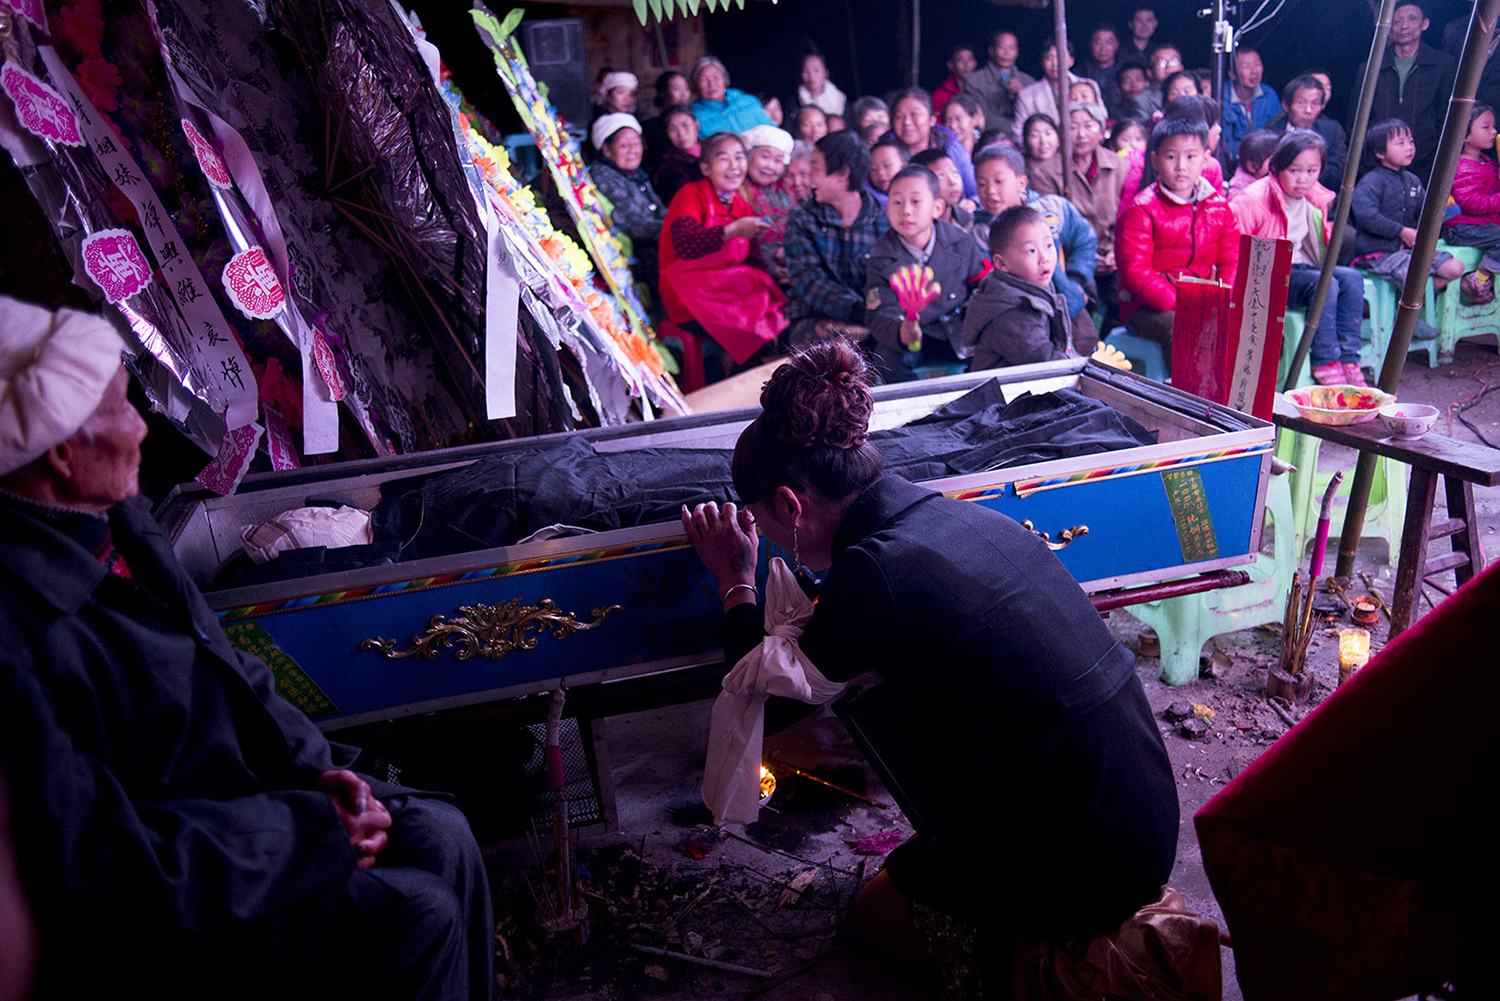 Liangzi kneels beside a dead body in front of funeral attendees, November 9, 2014.